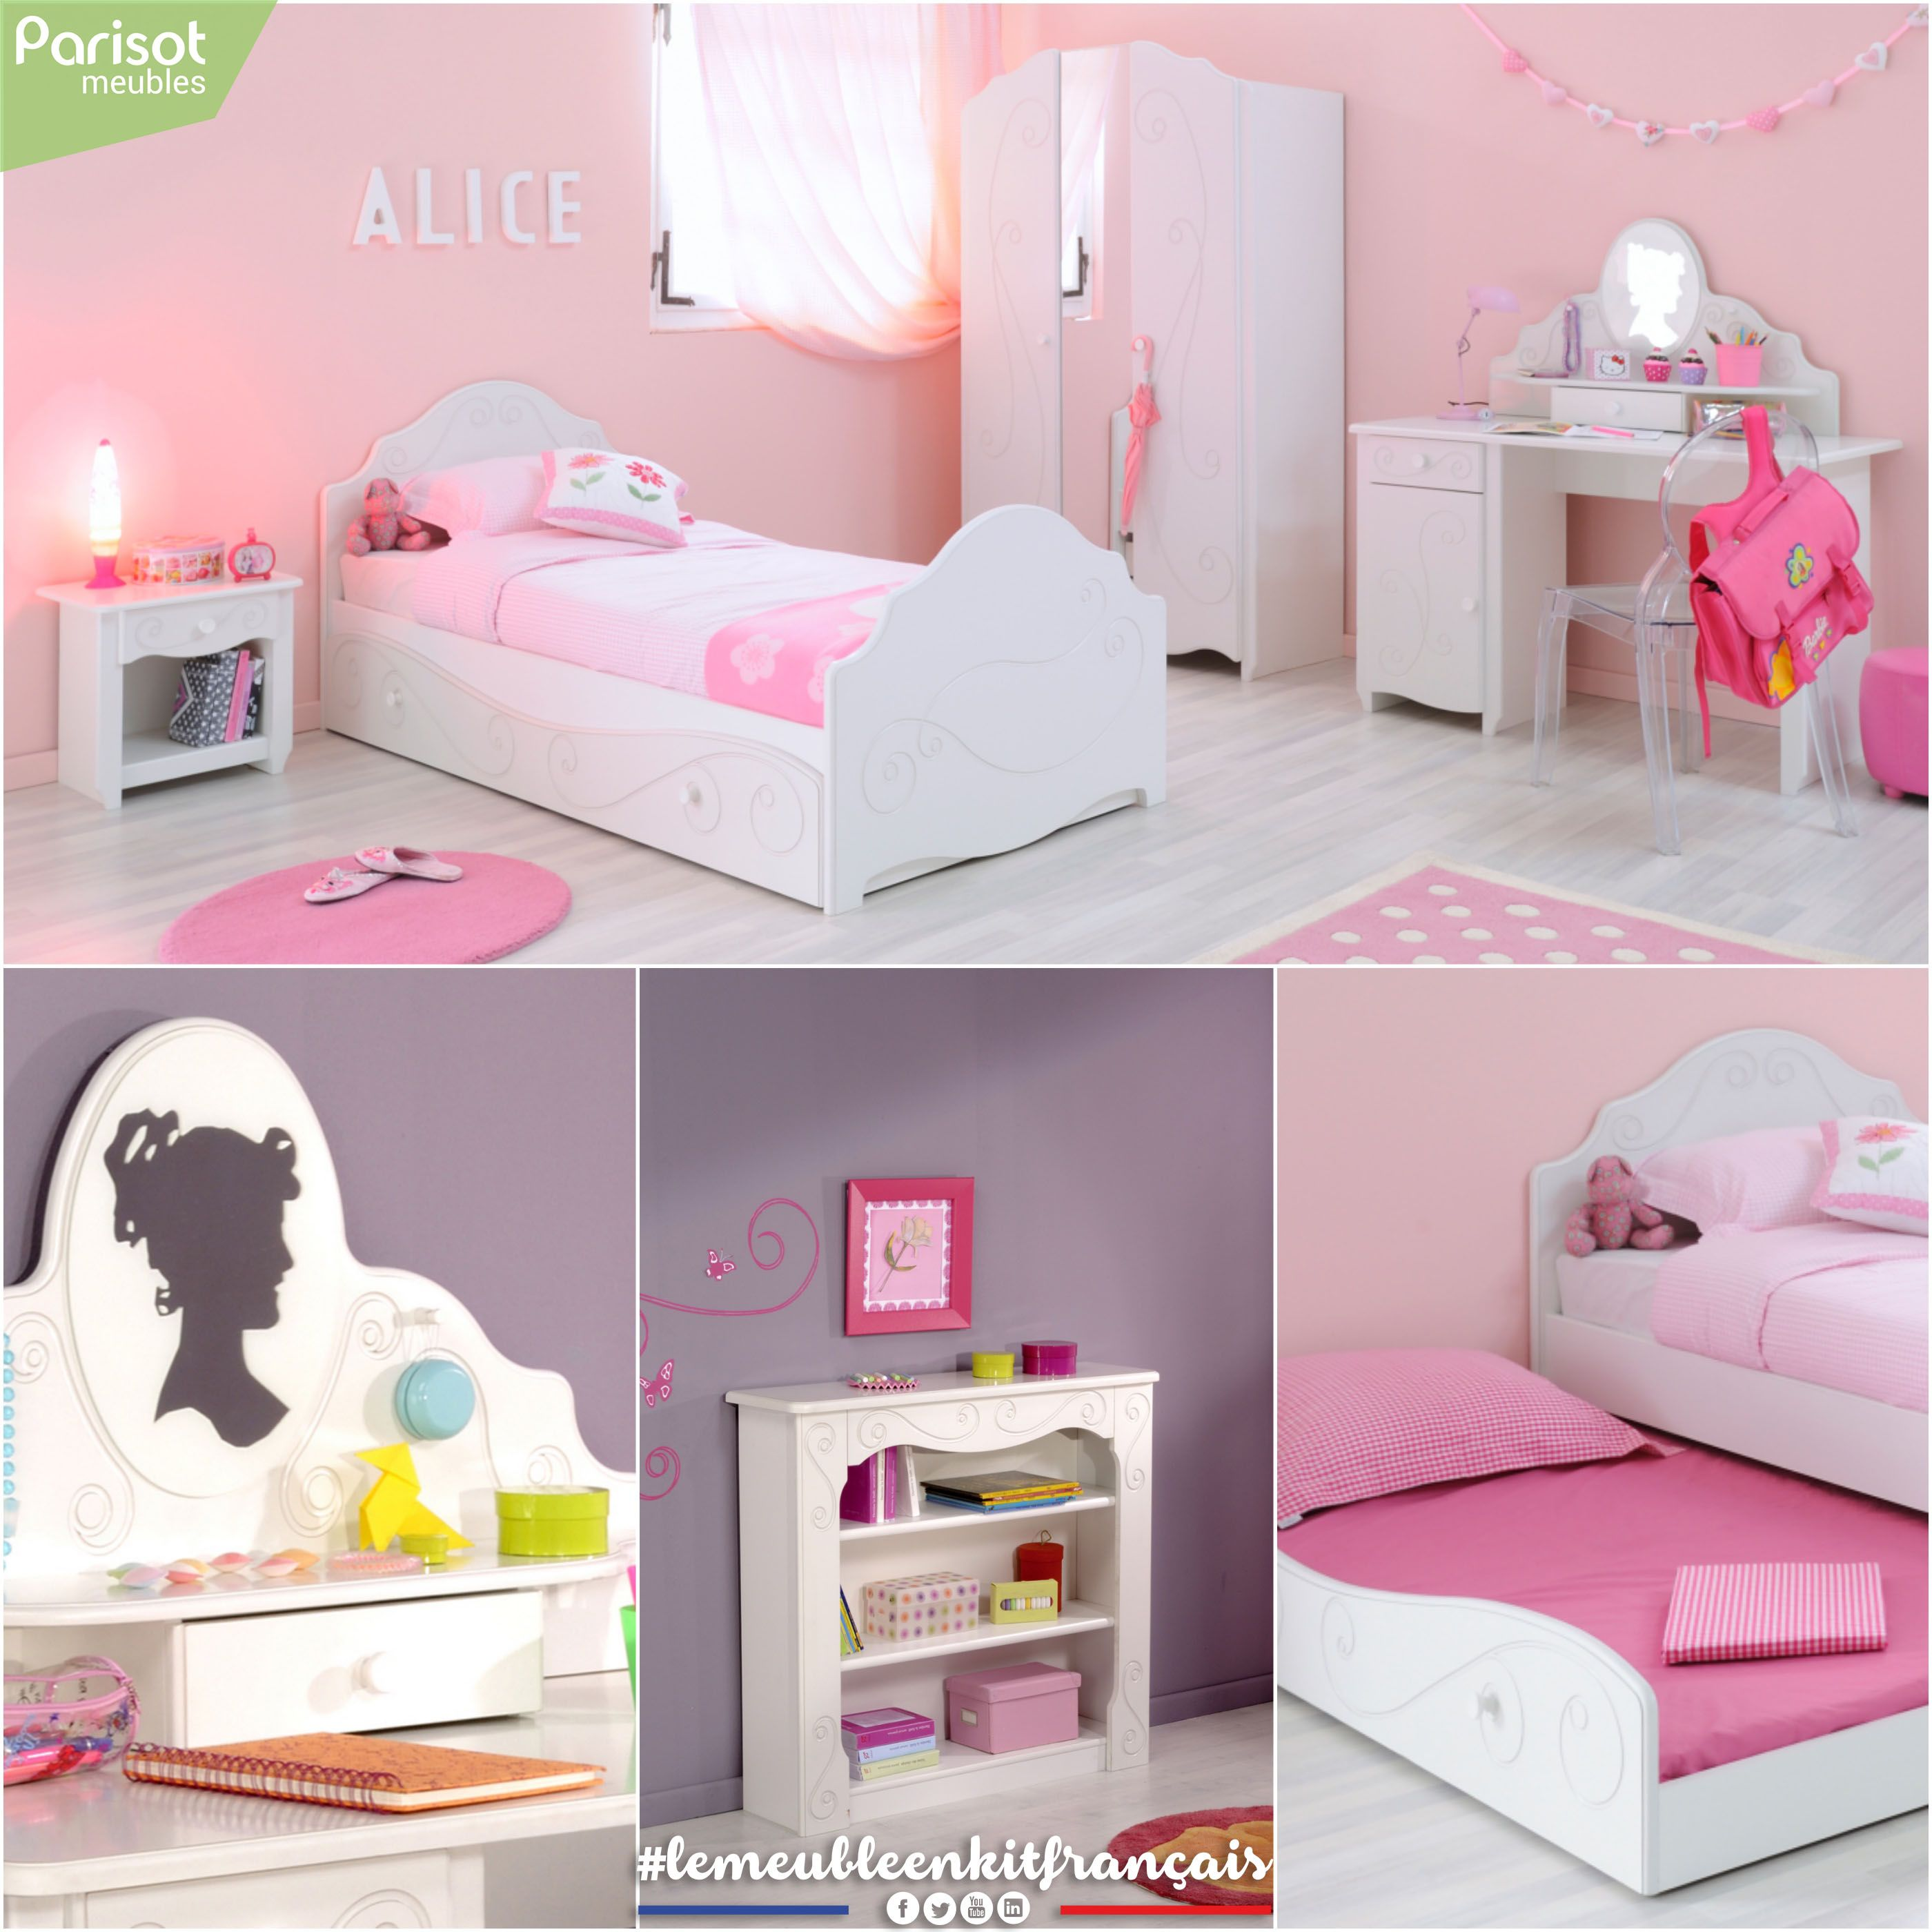 Alice By Parisot Meubles A Princess Themed Bedroom With Both Strong And  Classic Elements; The